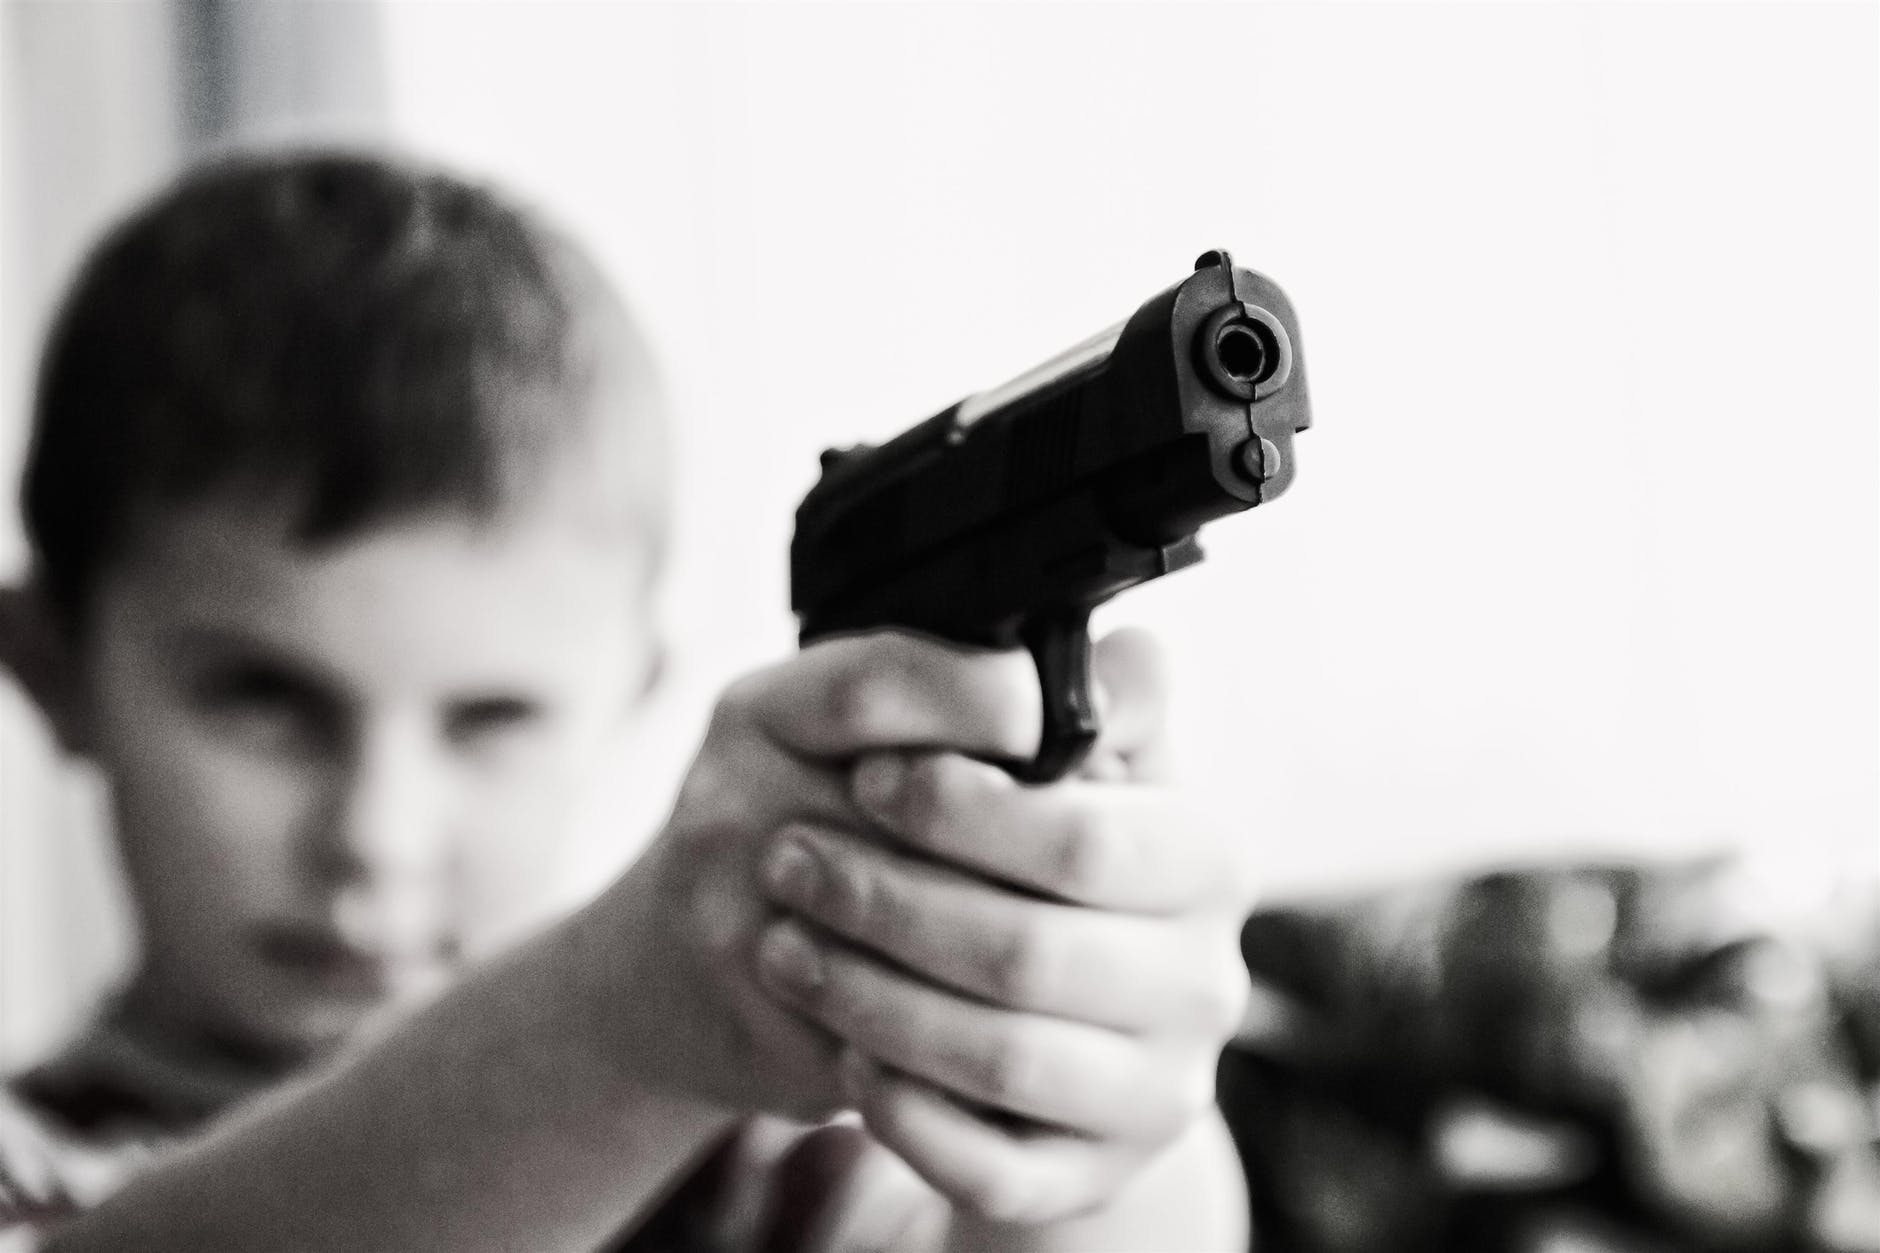 weapon-violence-children-child-52984.jpeg